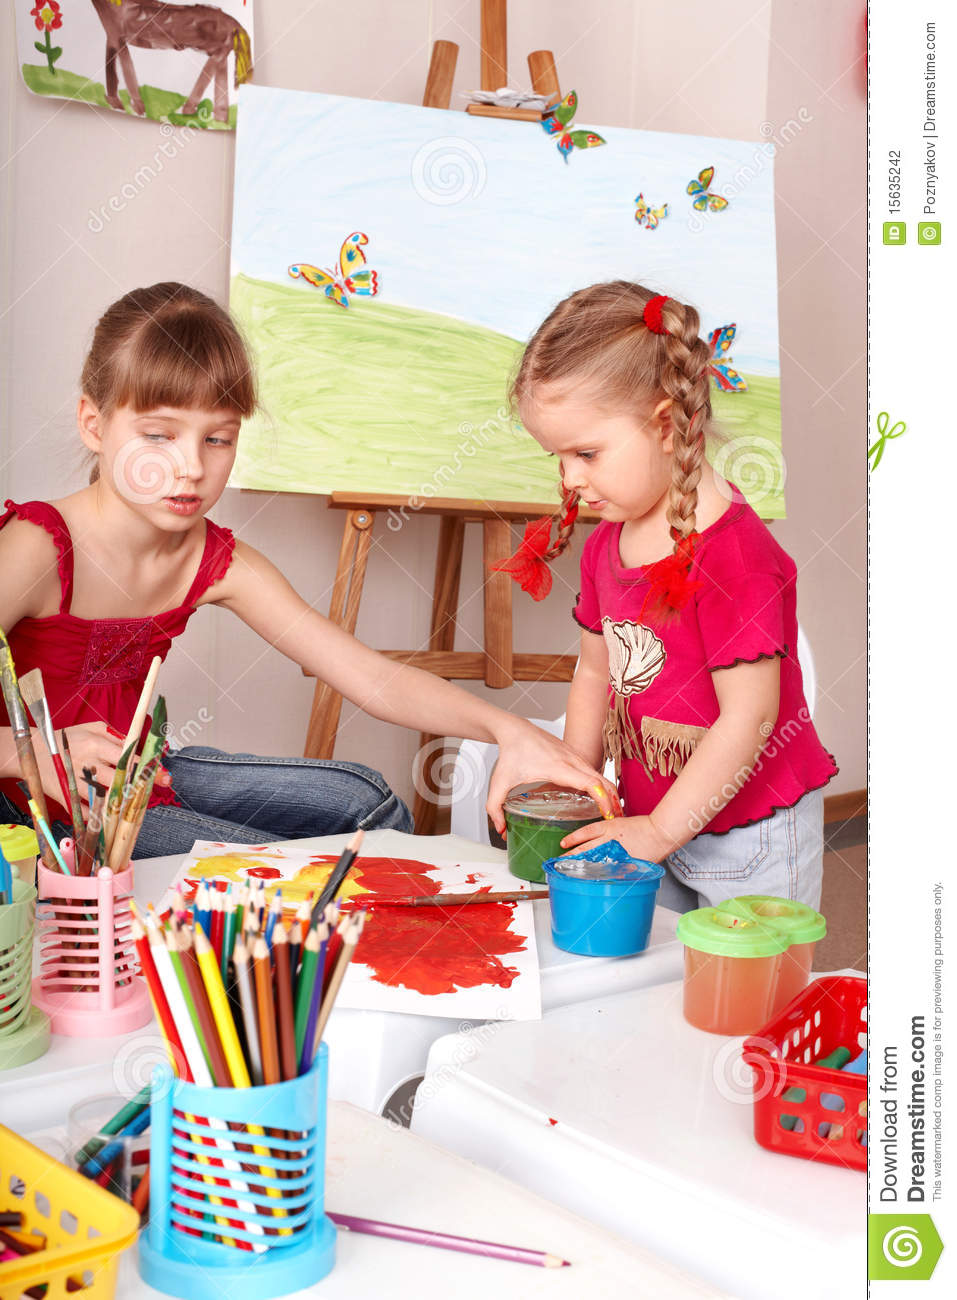 Kids drawing colour pencil in play room stock photography image 15635242 - Kids room image ...